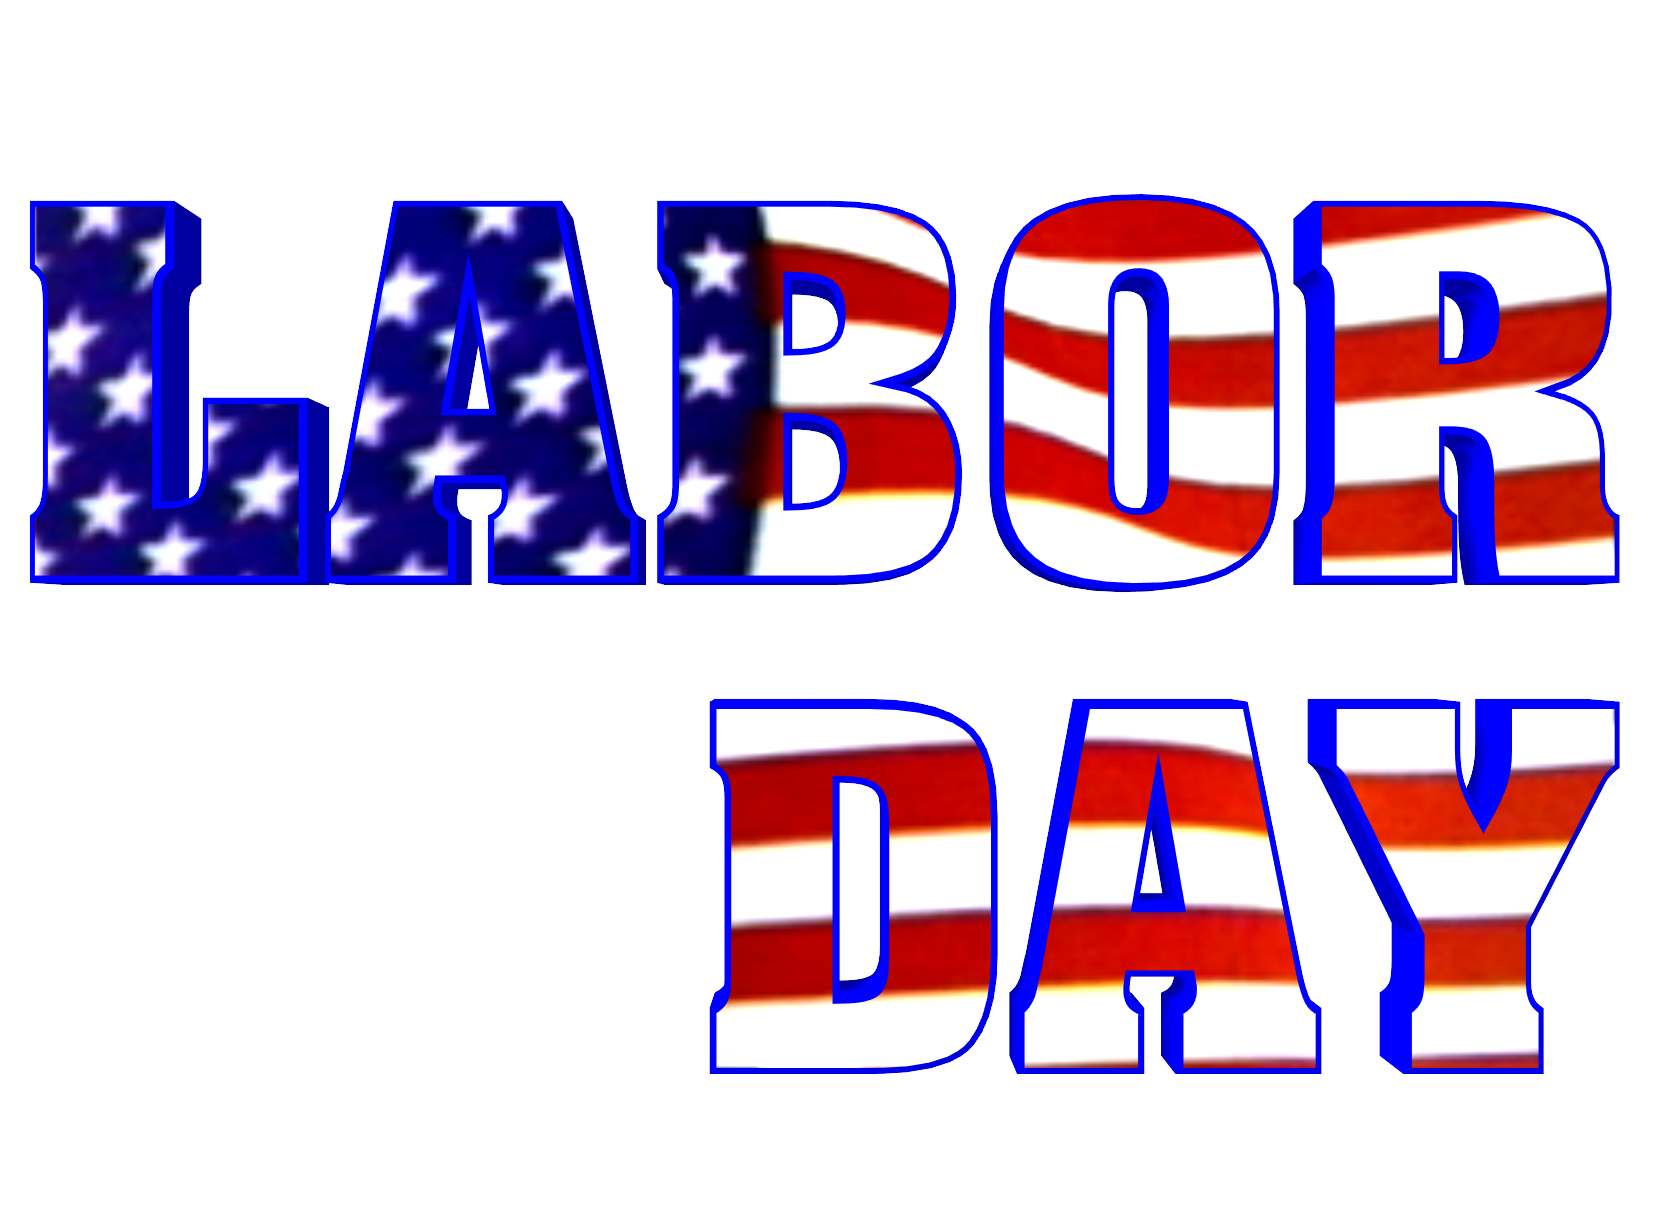 Labor day no school clipart graphic freeuse LABOR DAY | Labor-Day | Happy Labor Day!!! | Pinterest | Labour graphic freeuse